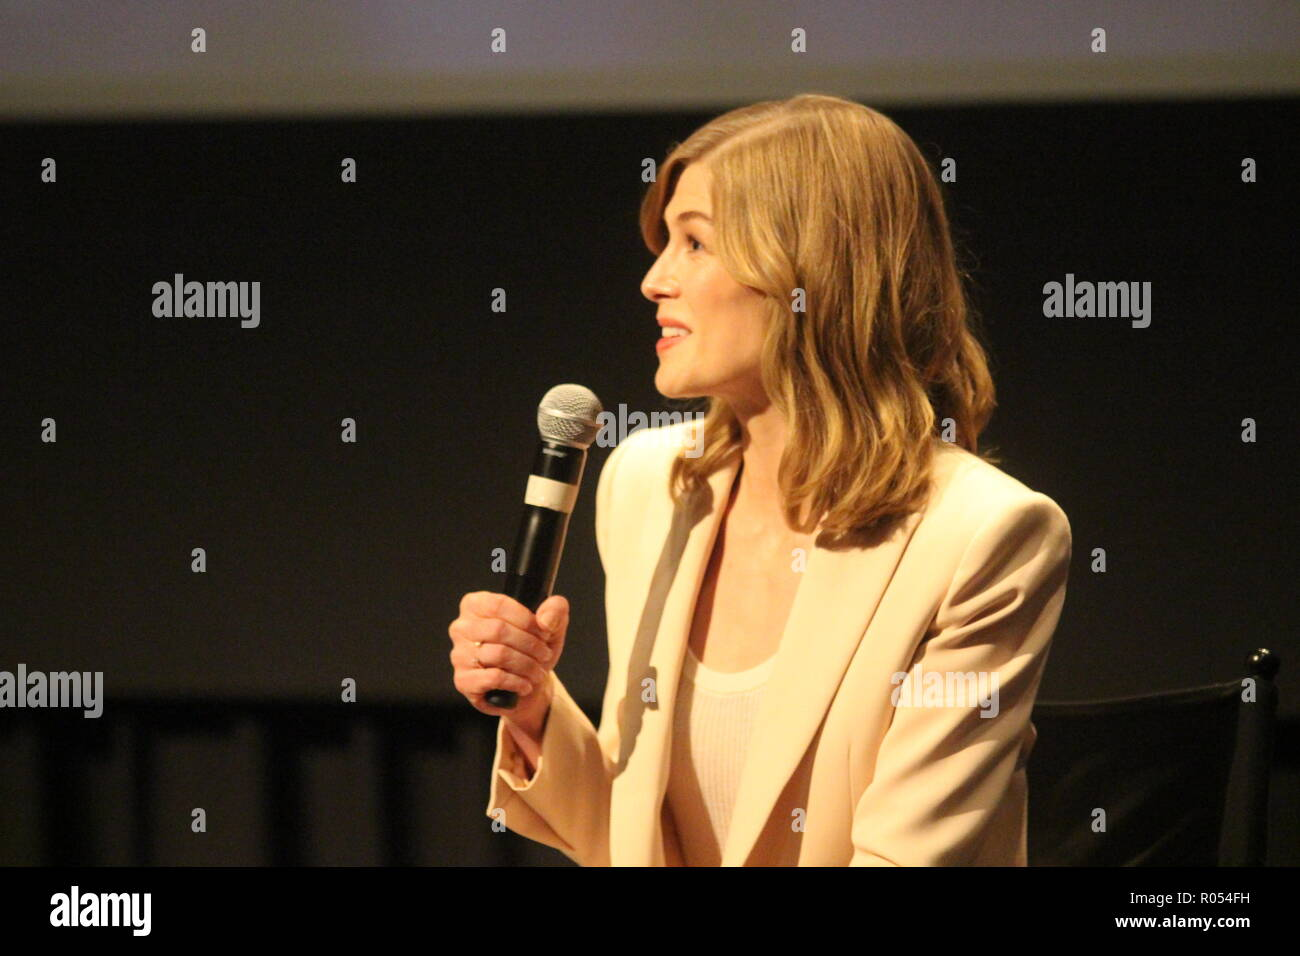 New York, USA. 1st November, 2018. Actor Rosamund Pike speaks after a screening of her film 'A Private War' about war correspondent Marie Colvin.  Photo: Matthew Russell Lee / Inner City Press Credit: Matthew Russell Lee/Alamy Live News - Stock Image